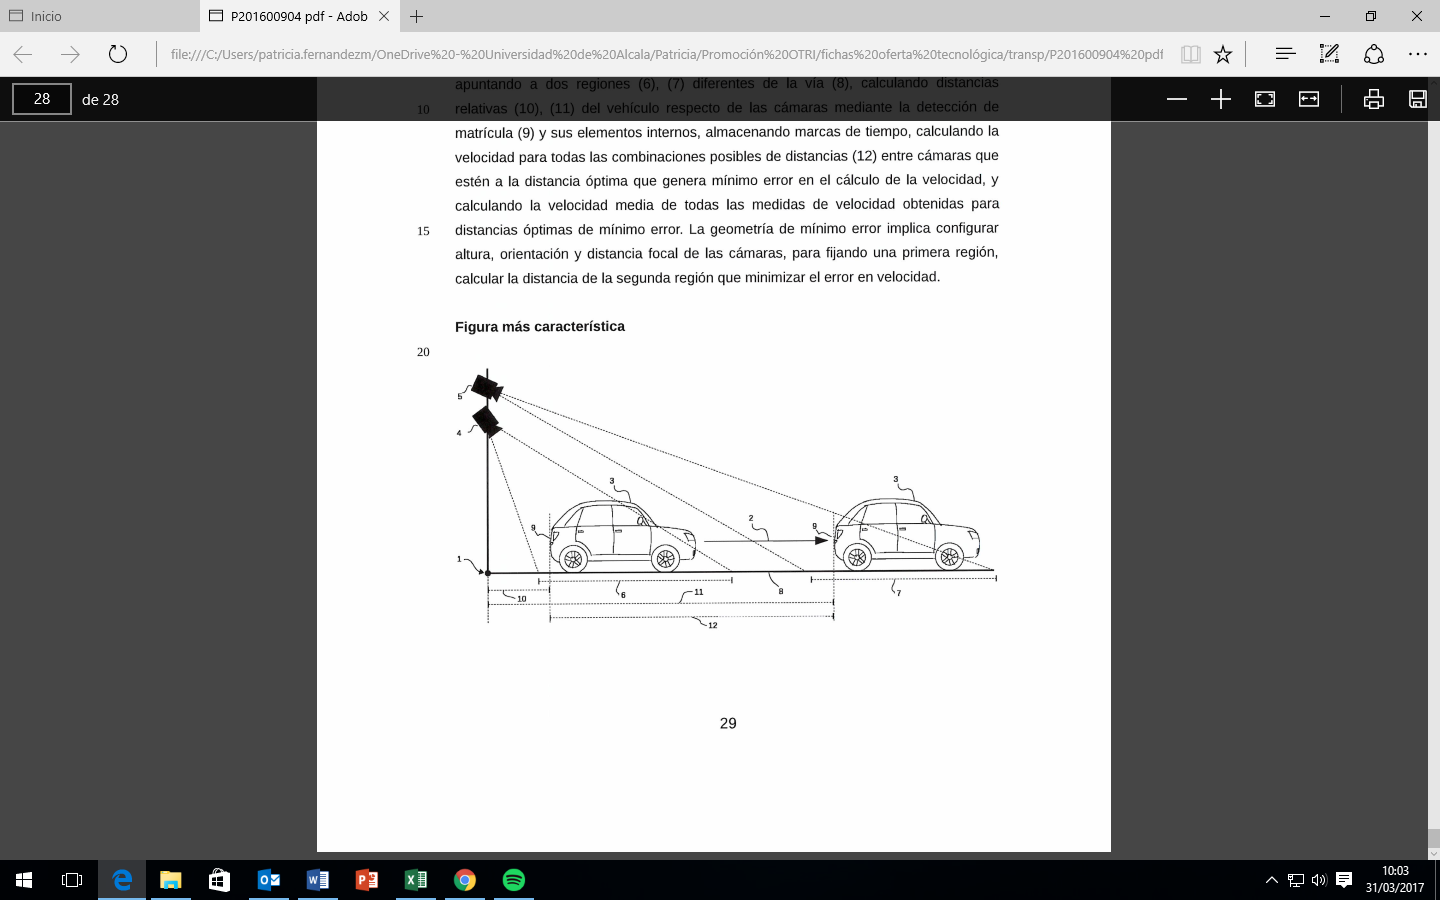 Procedure for measuring the speed of motor vehicles in the short section, with minimum error geometry, using 2 cameras and artificial vision algorithms.